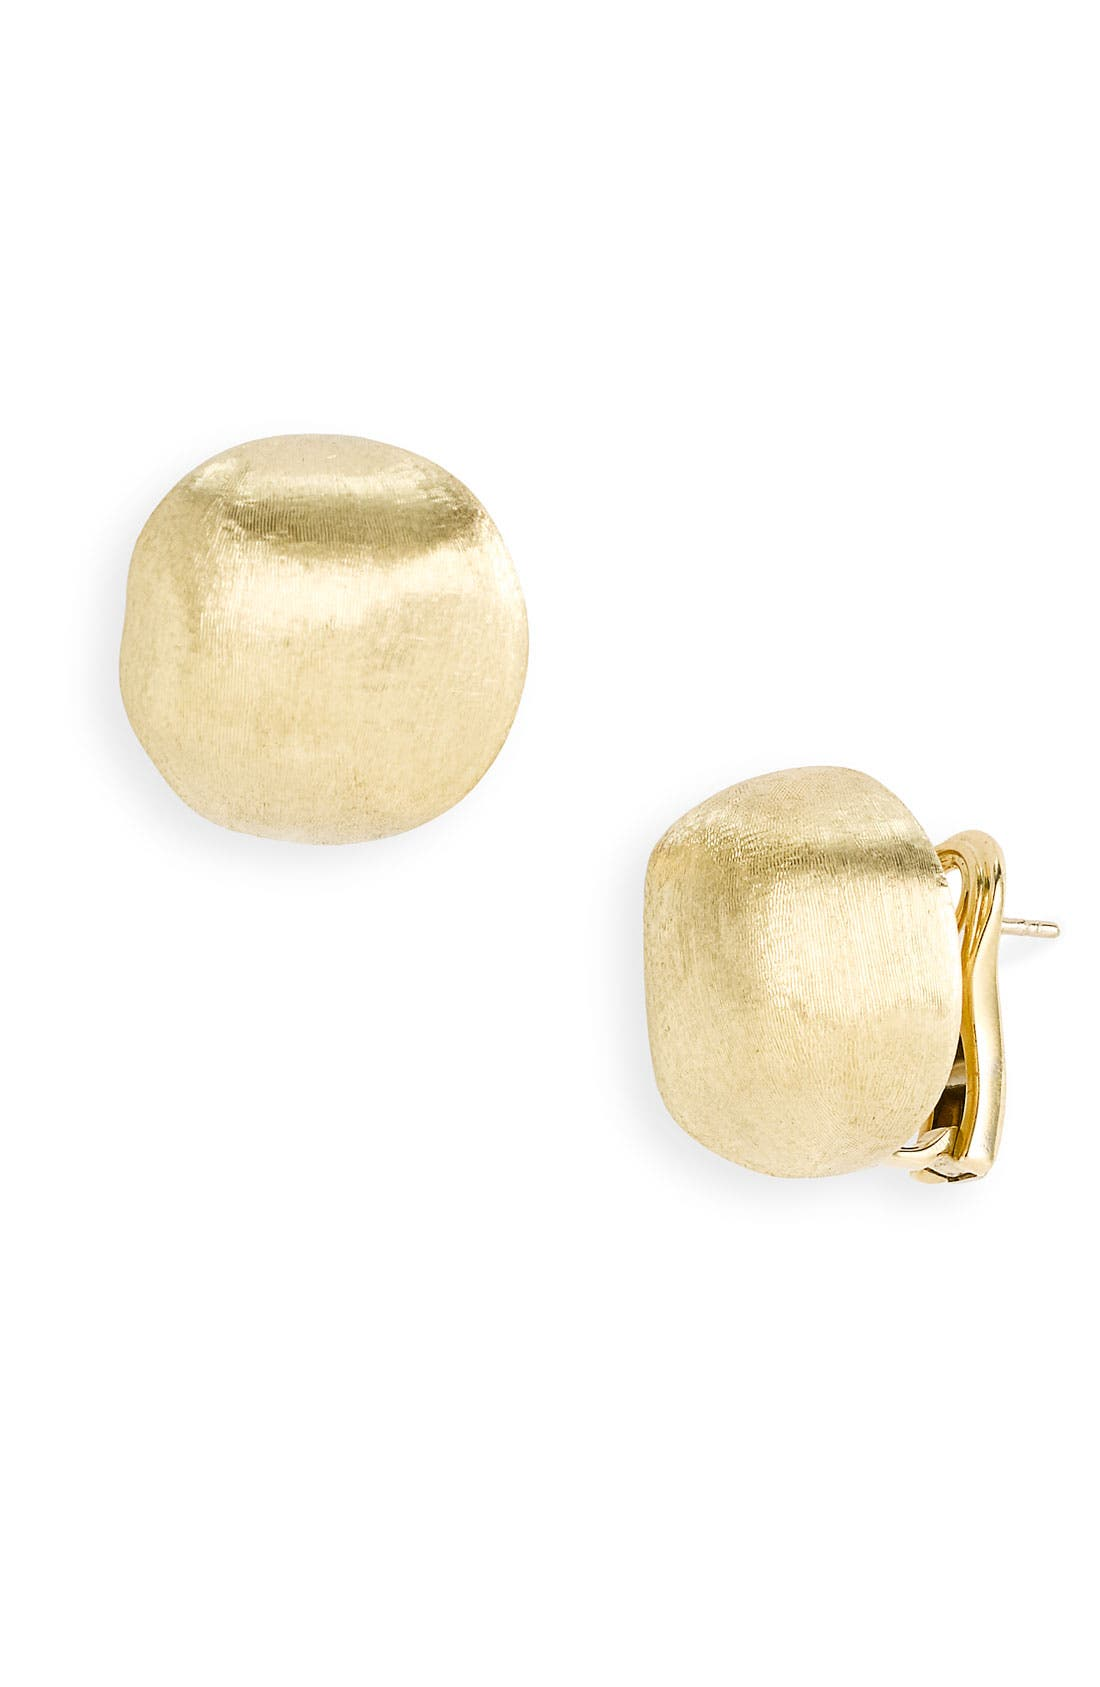 Main Image - Marco Bicego 'Africa Gold' Button Stud Earrings